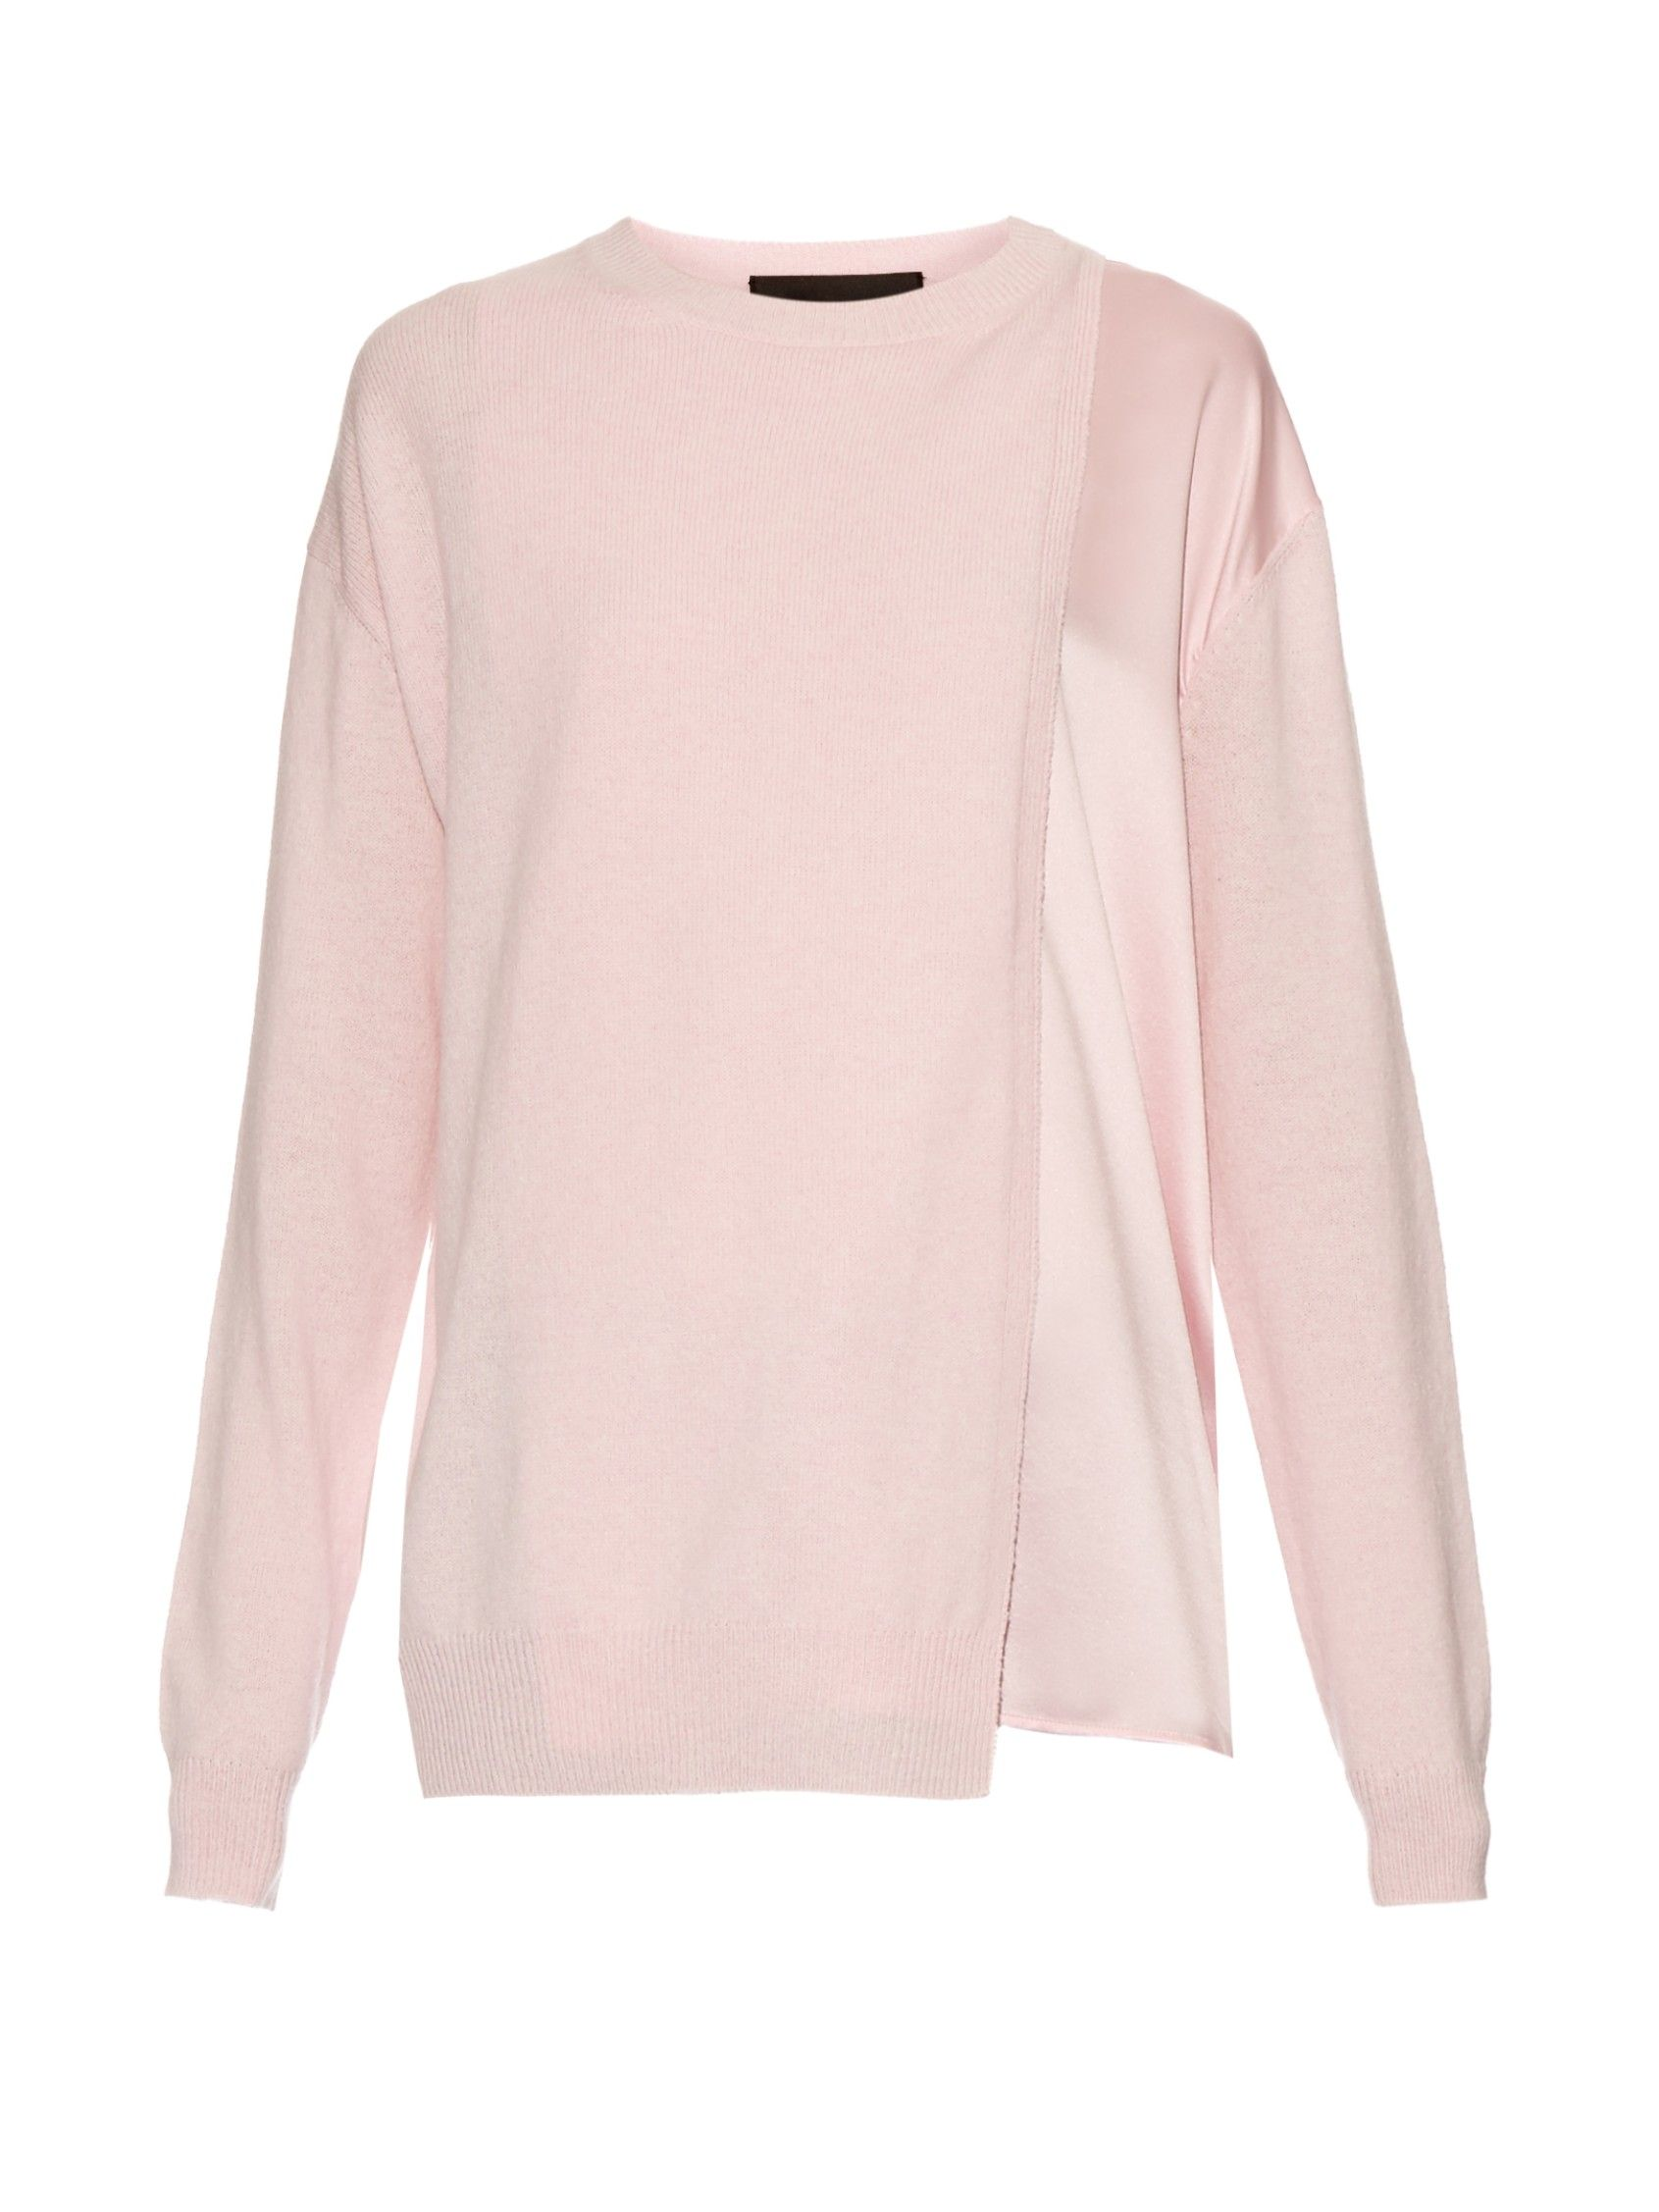 Haider Ackermann's light-pink Invidia sweater is crafted from an ultra-soft blend of fleece-wool and cashmere. It has a loose fit and contemporary crossover front with a slinky silk underlay. Offset the pretty vibe with a pair of the label's black leather trousers.